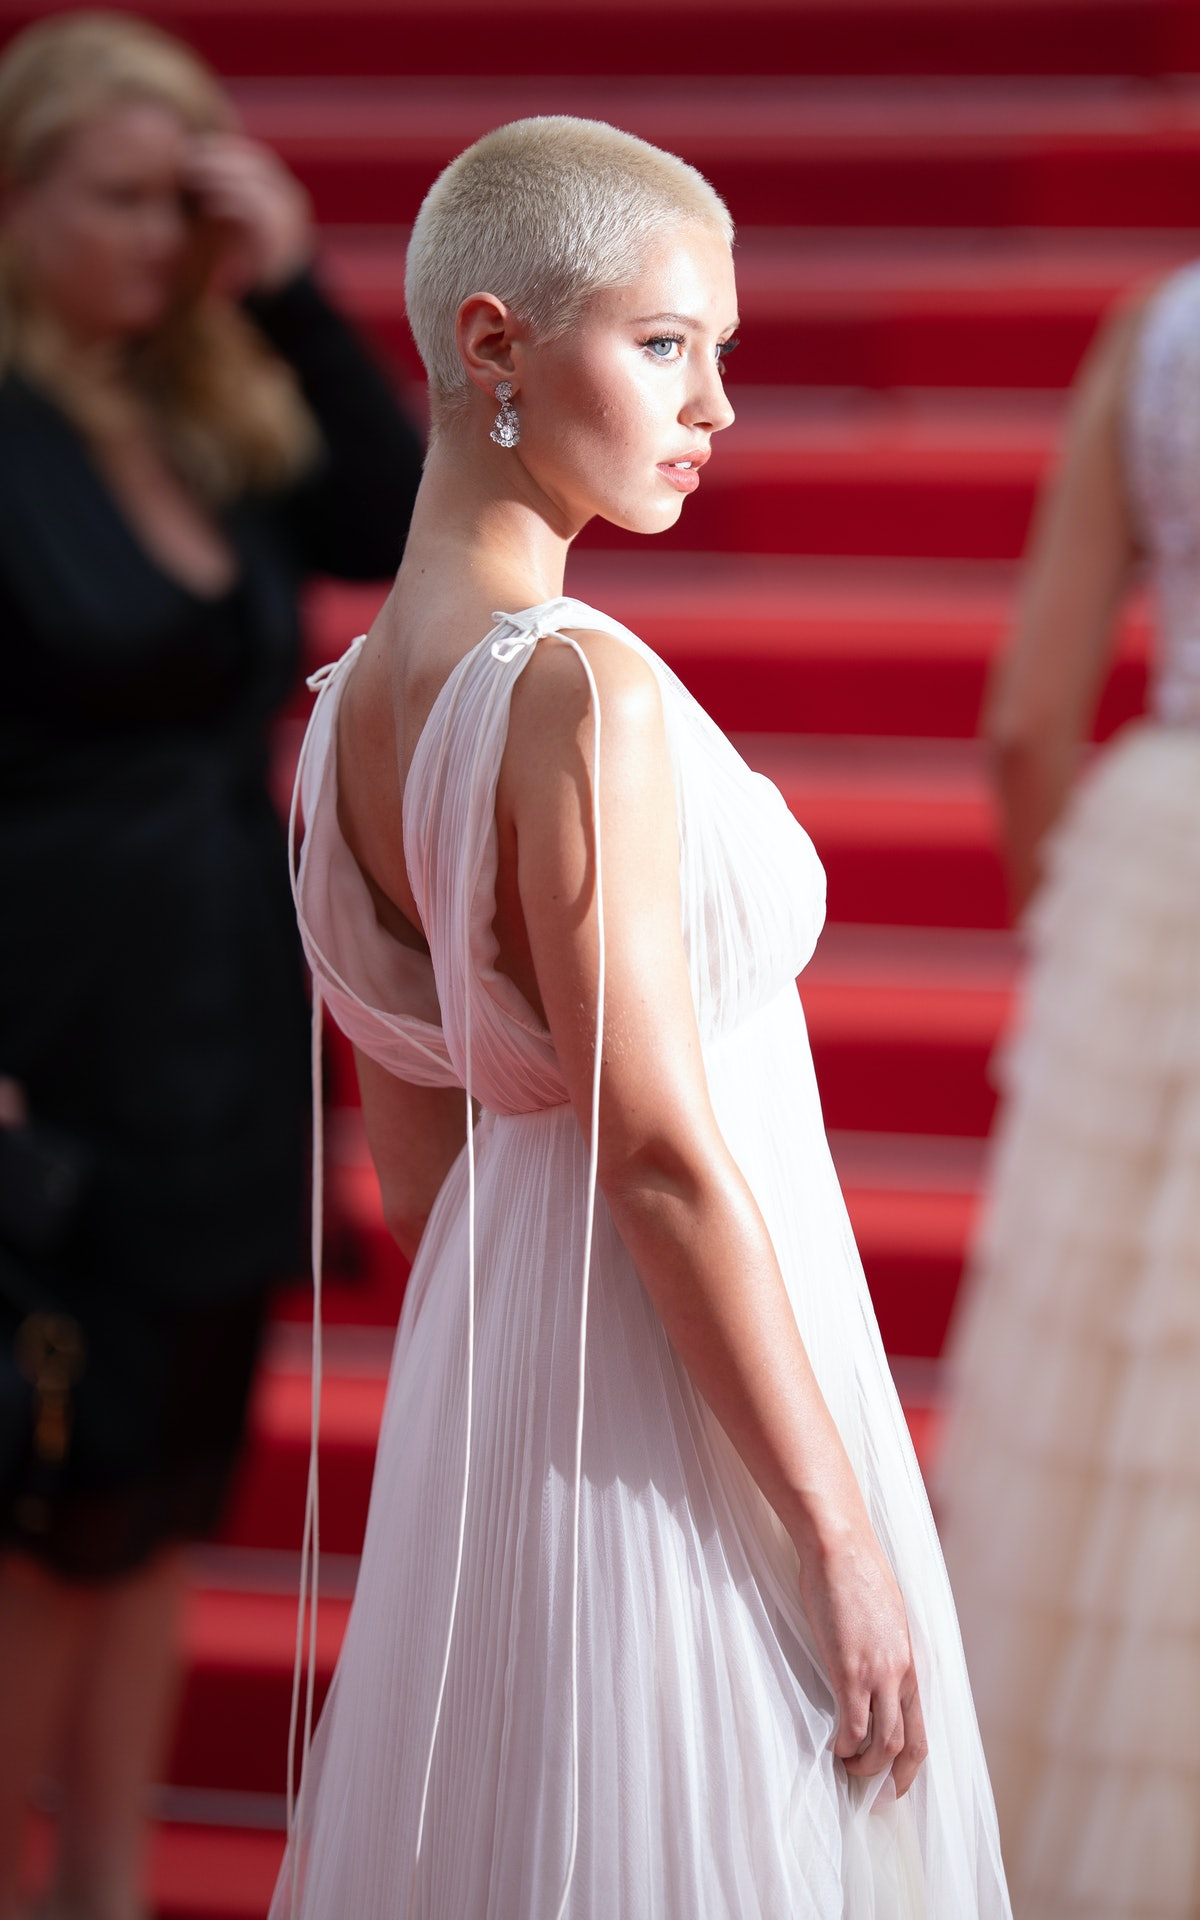 Iris Law showing off her new shaved head